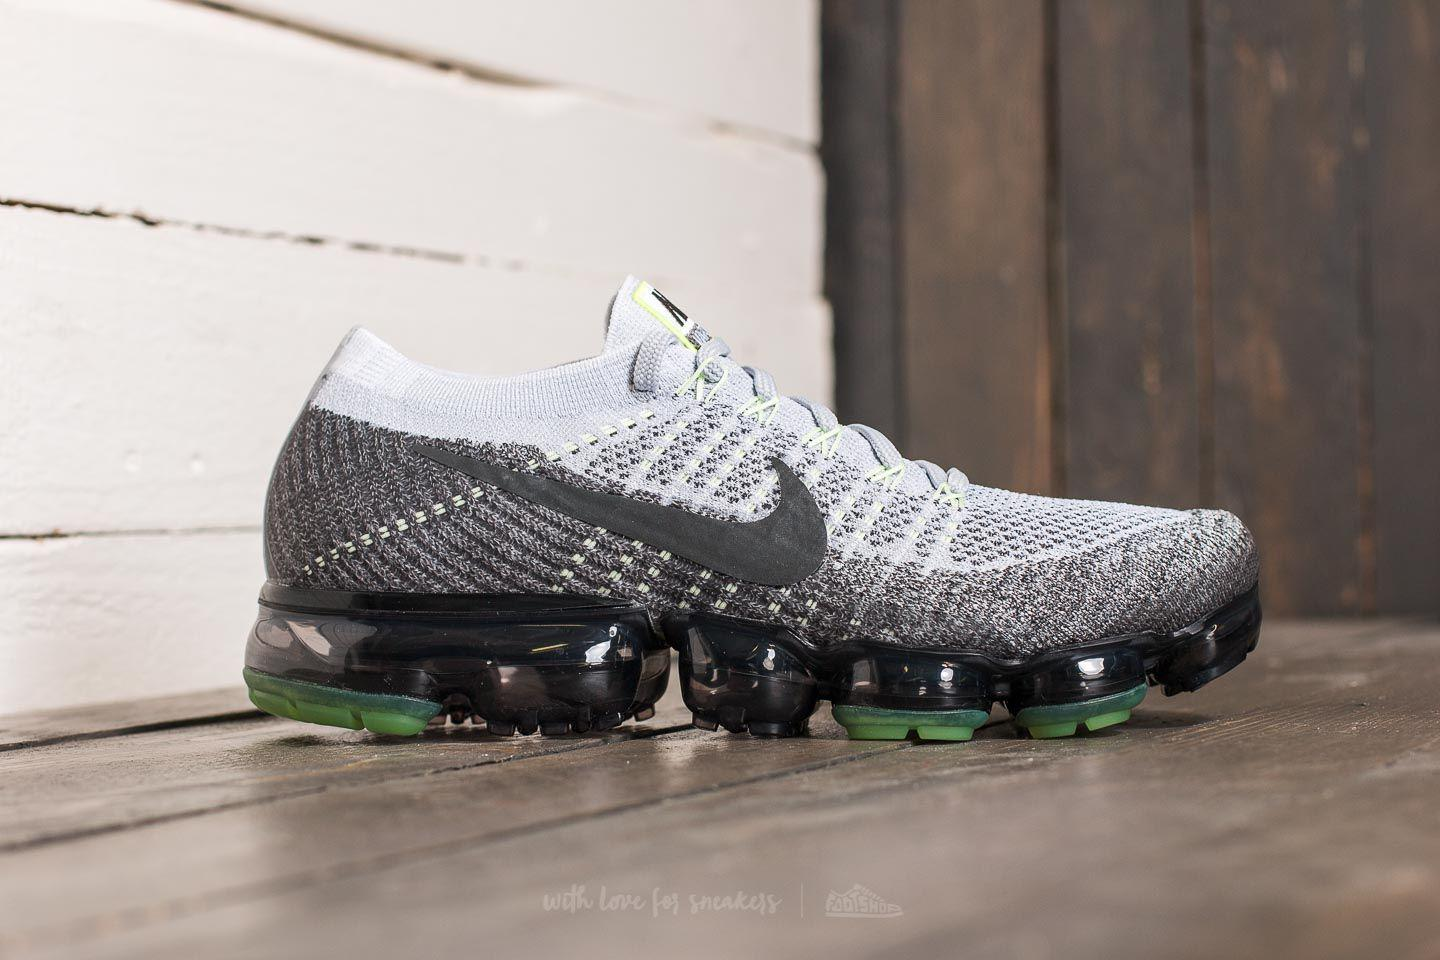 Lyst - Nike Air Vapormax Flyknit E Pure Platinum  Anthracite-white ... 83c5b85d91